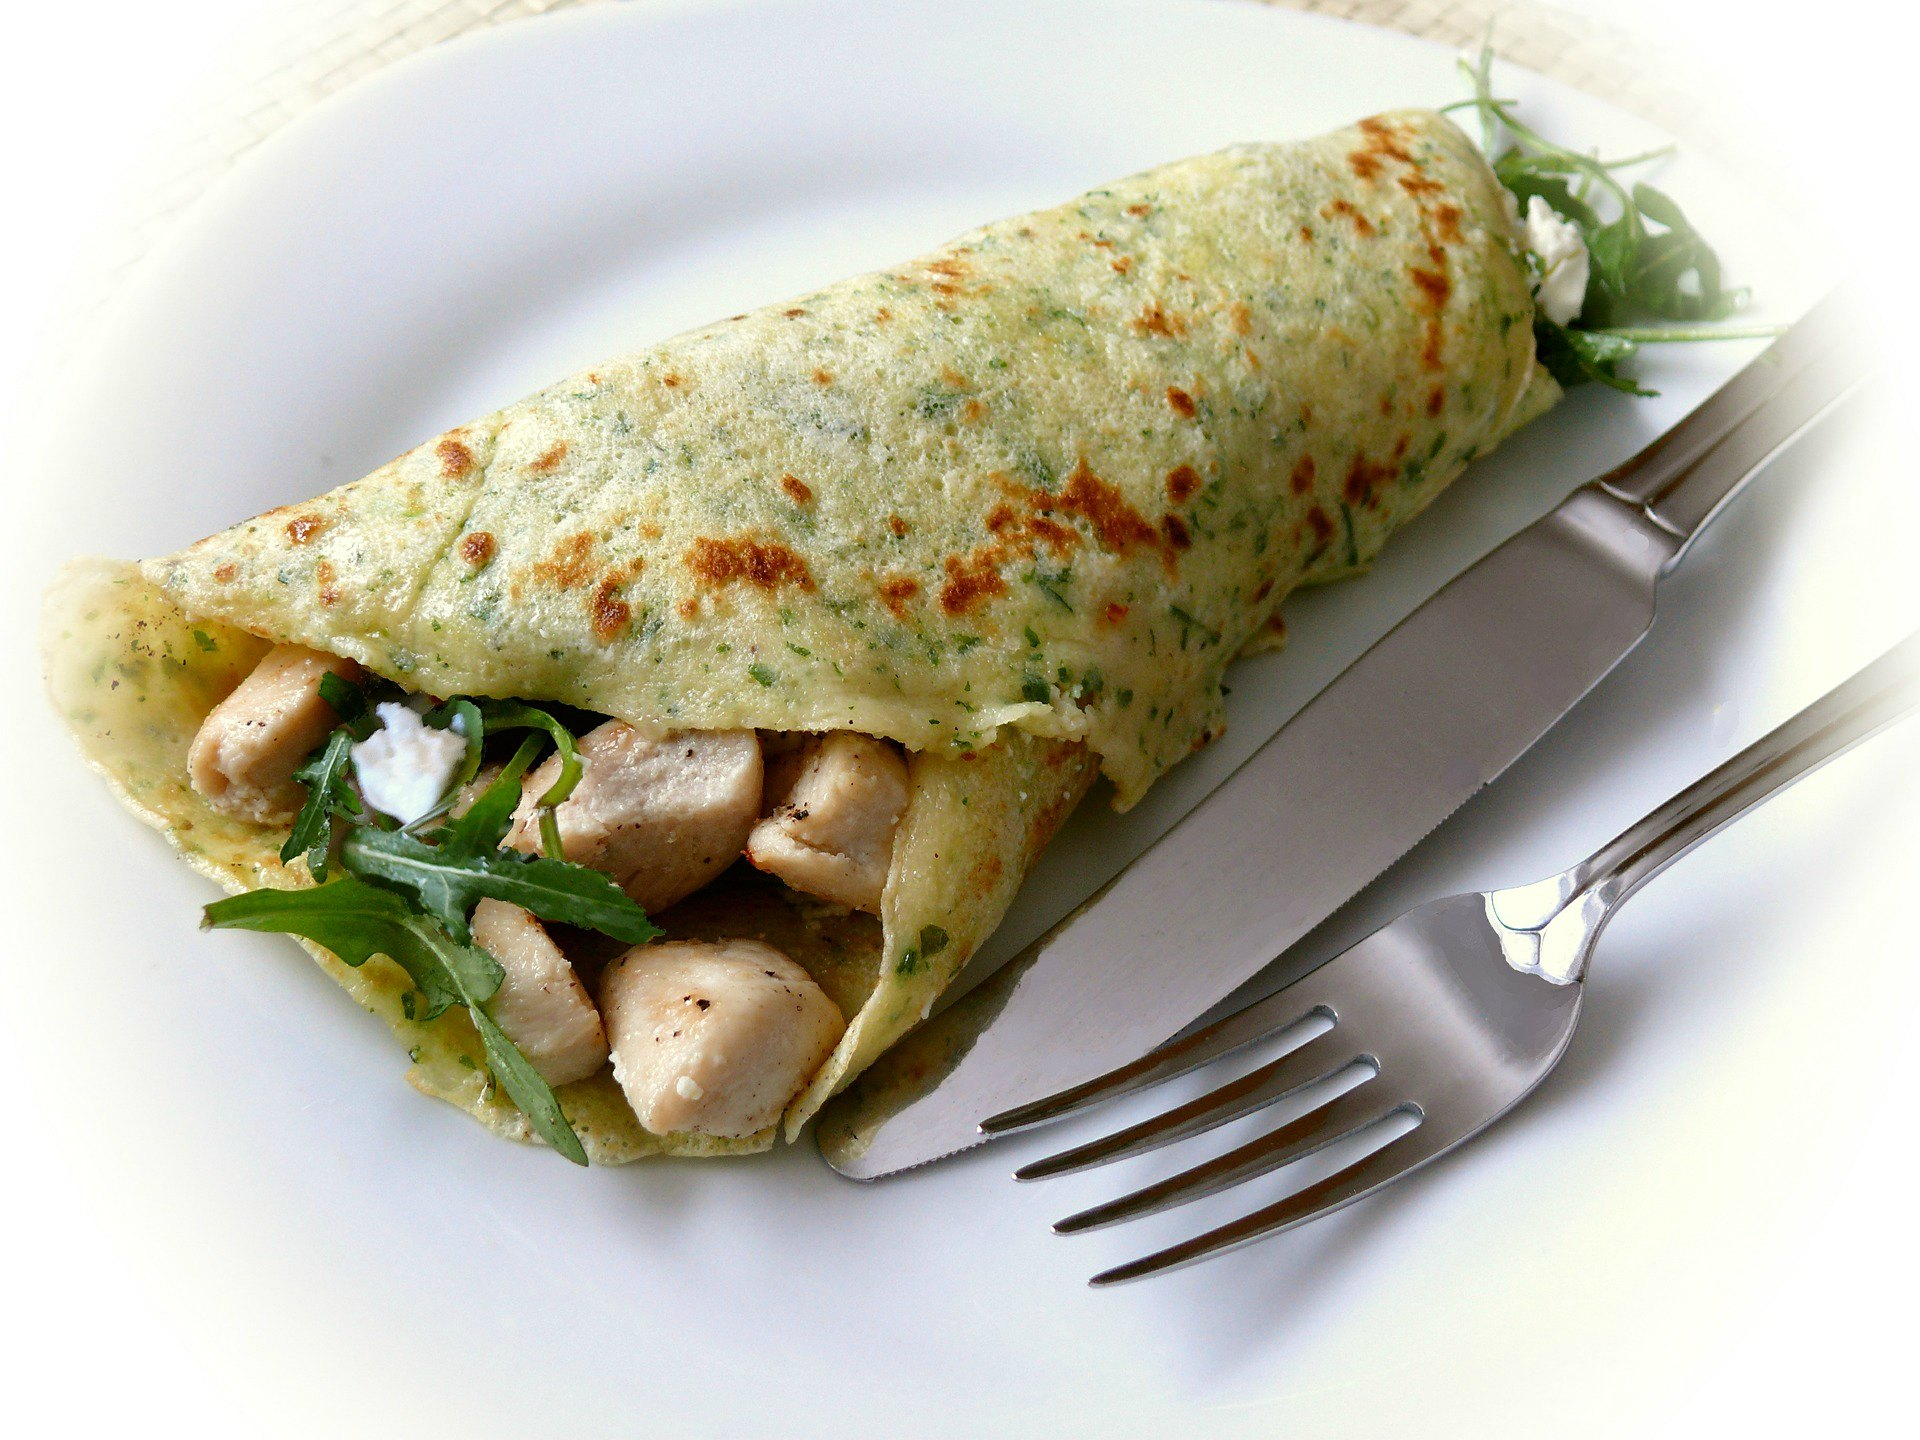 Healthy Pancake Recipes for Your Training Regime